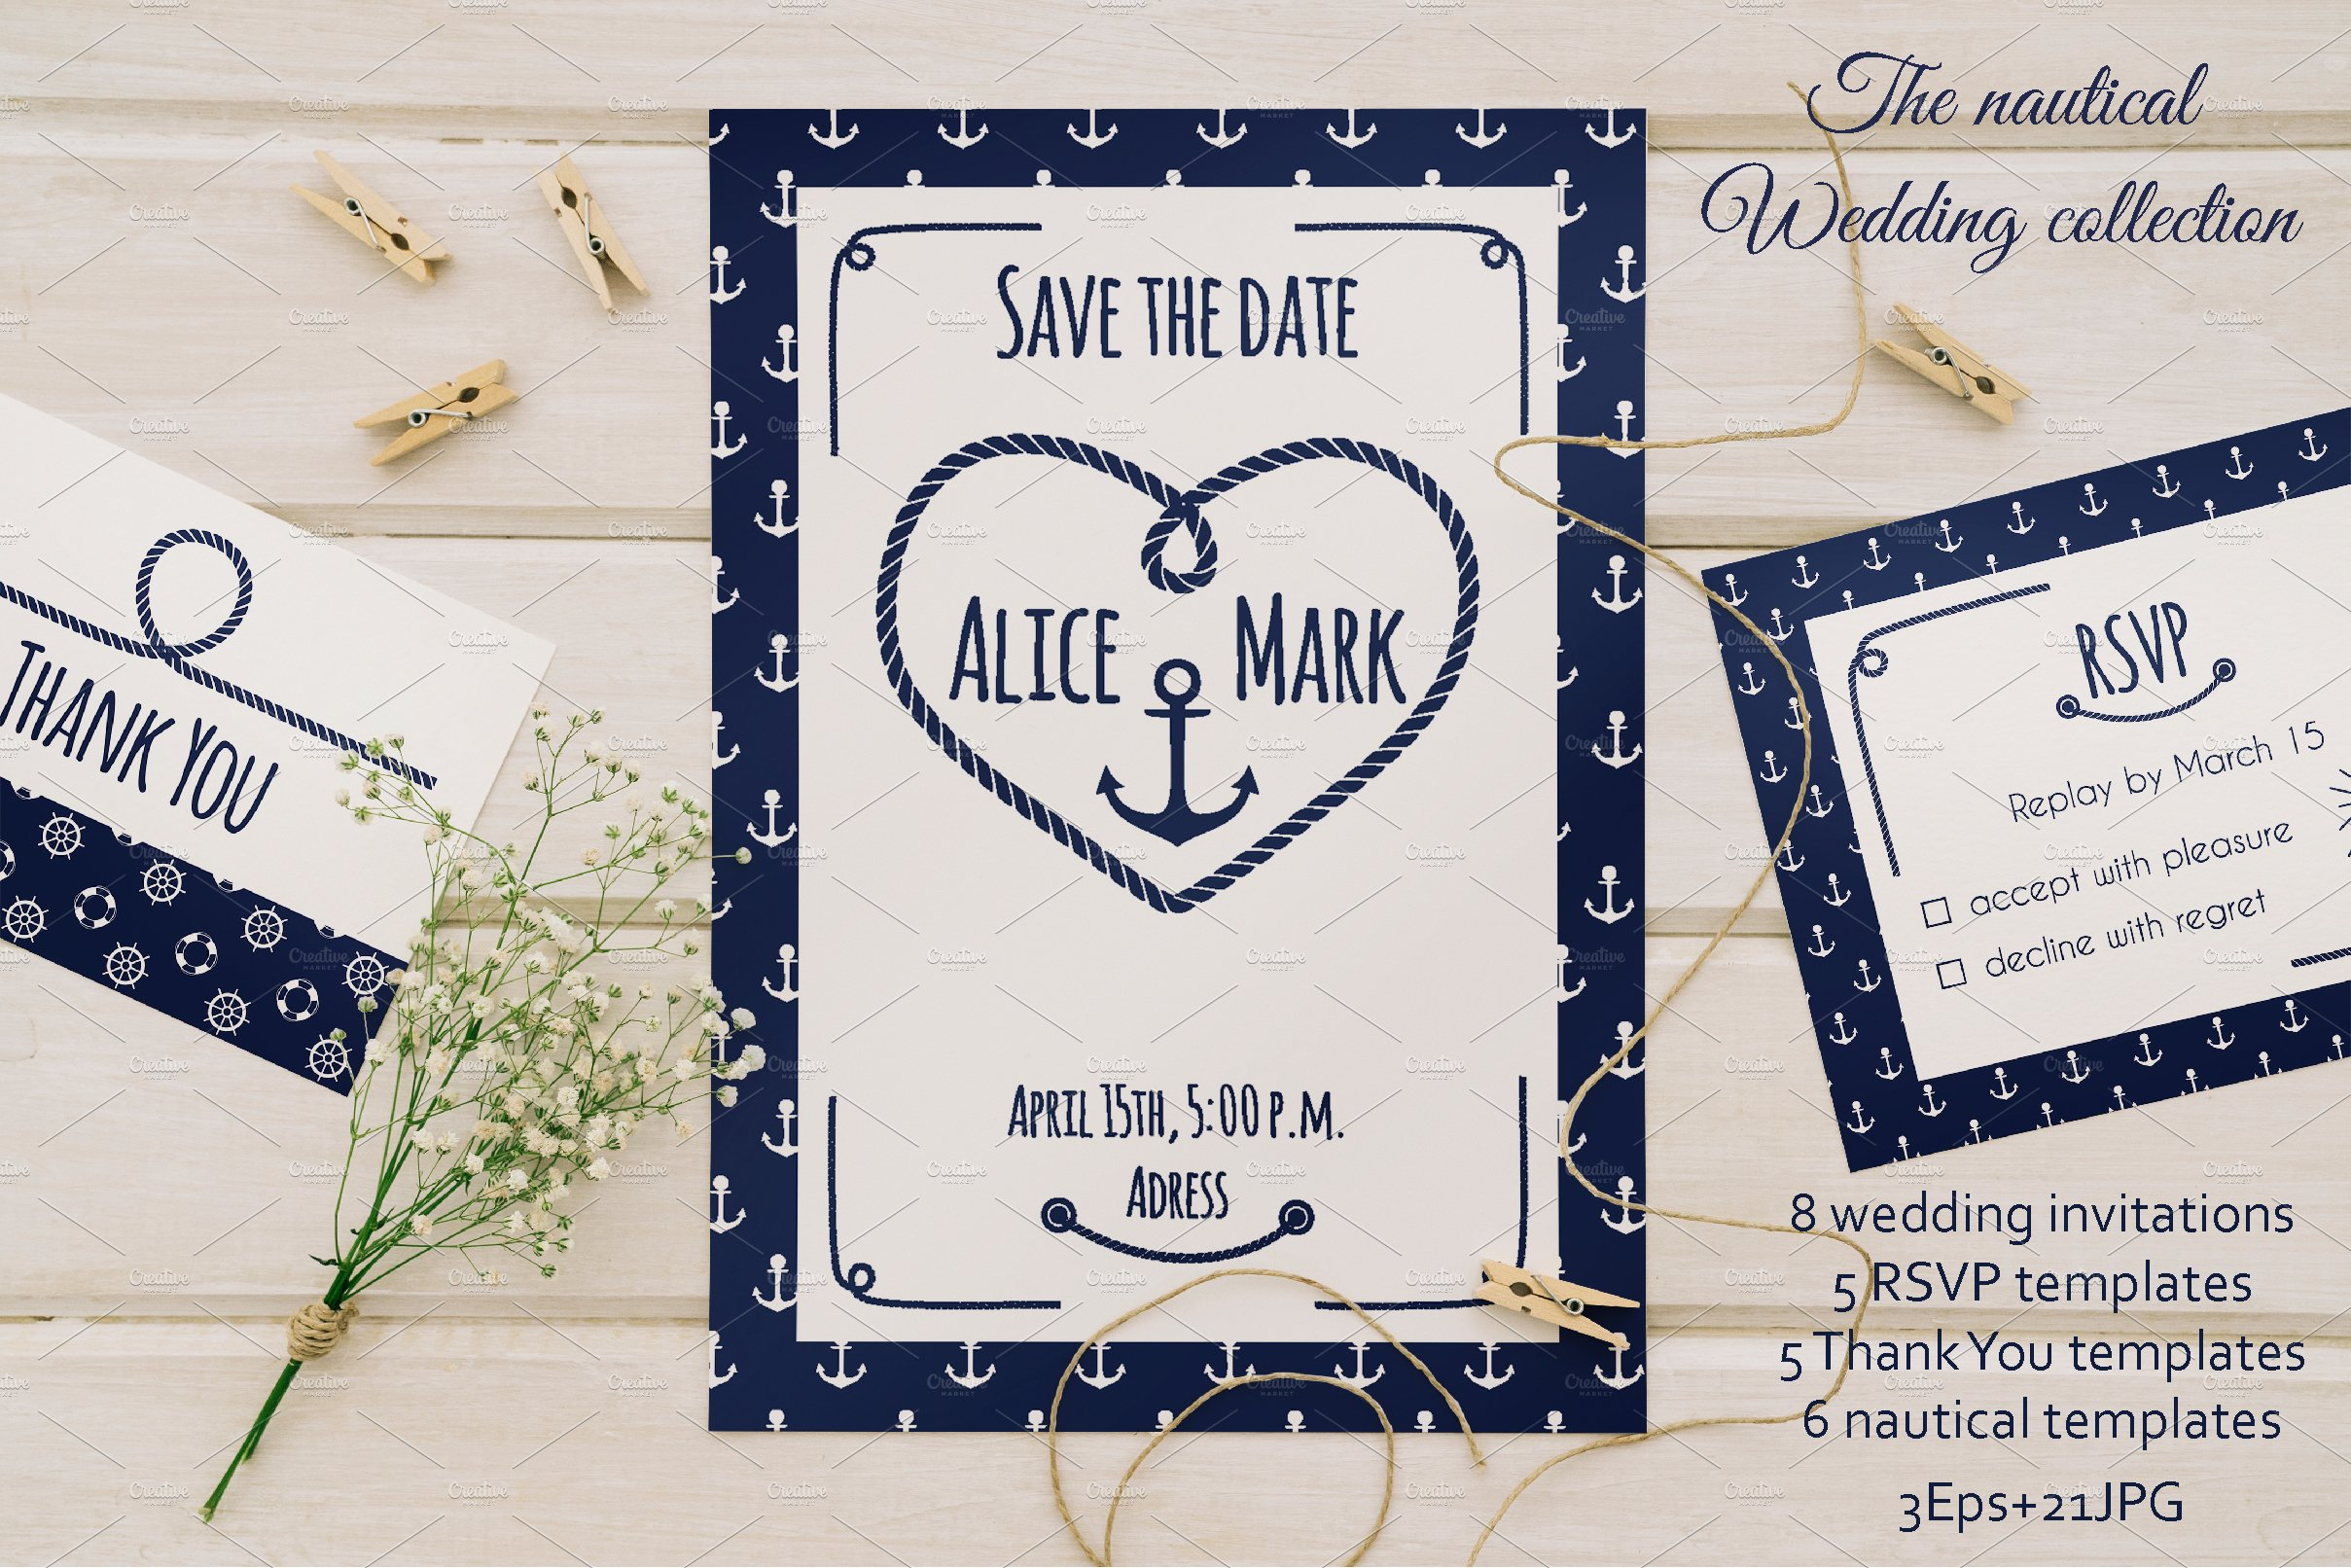 Nautical Wedding Collection ~ Invitation Templates ~ Creative Market